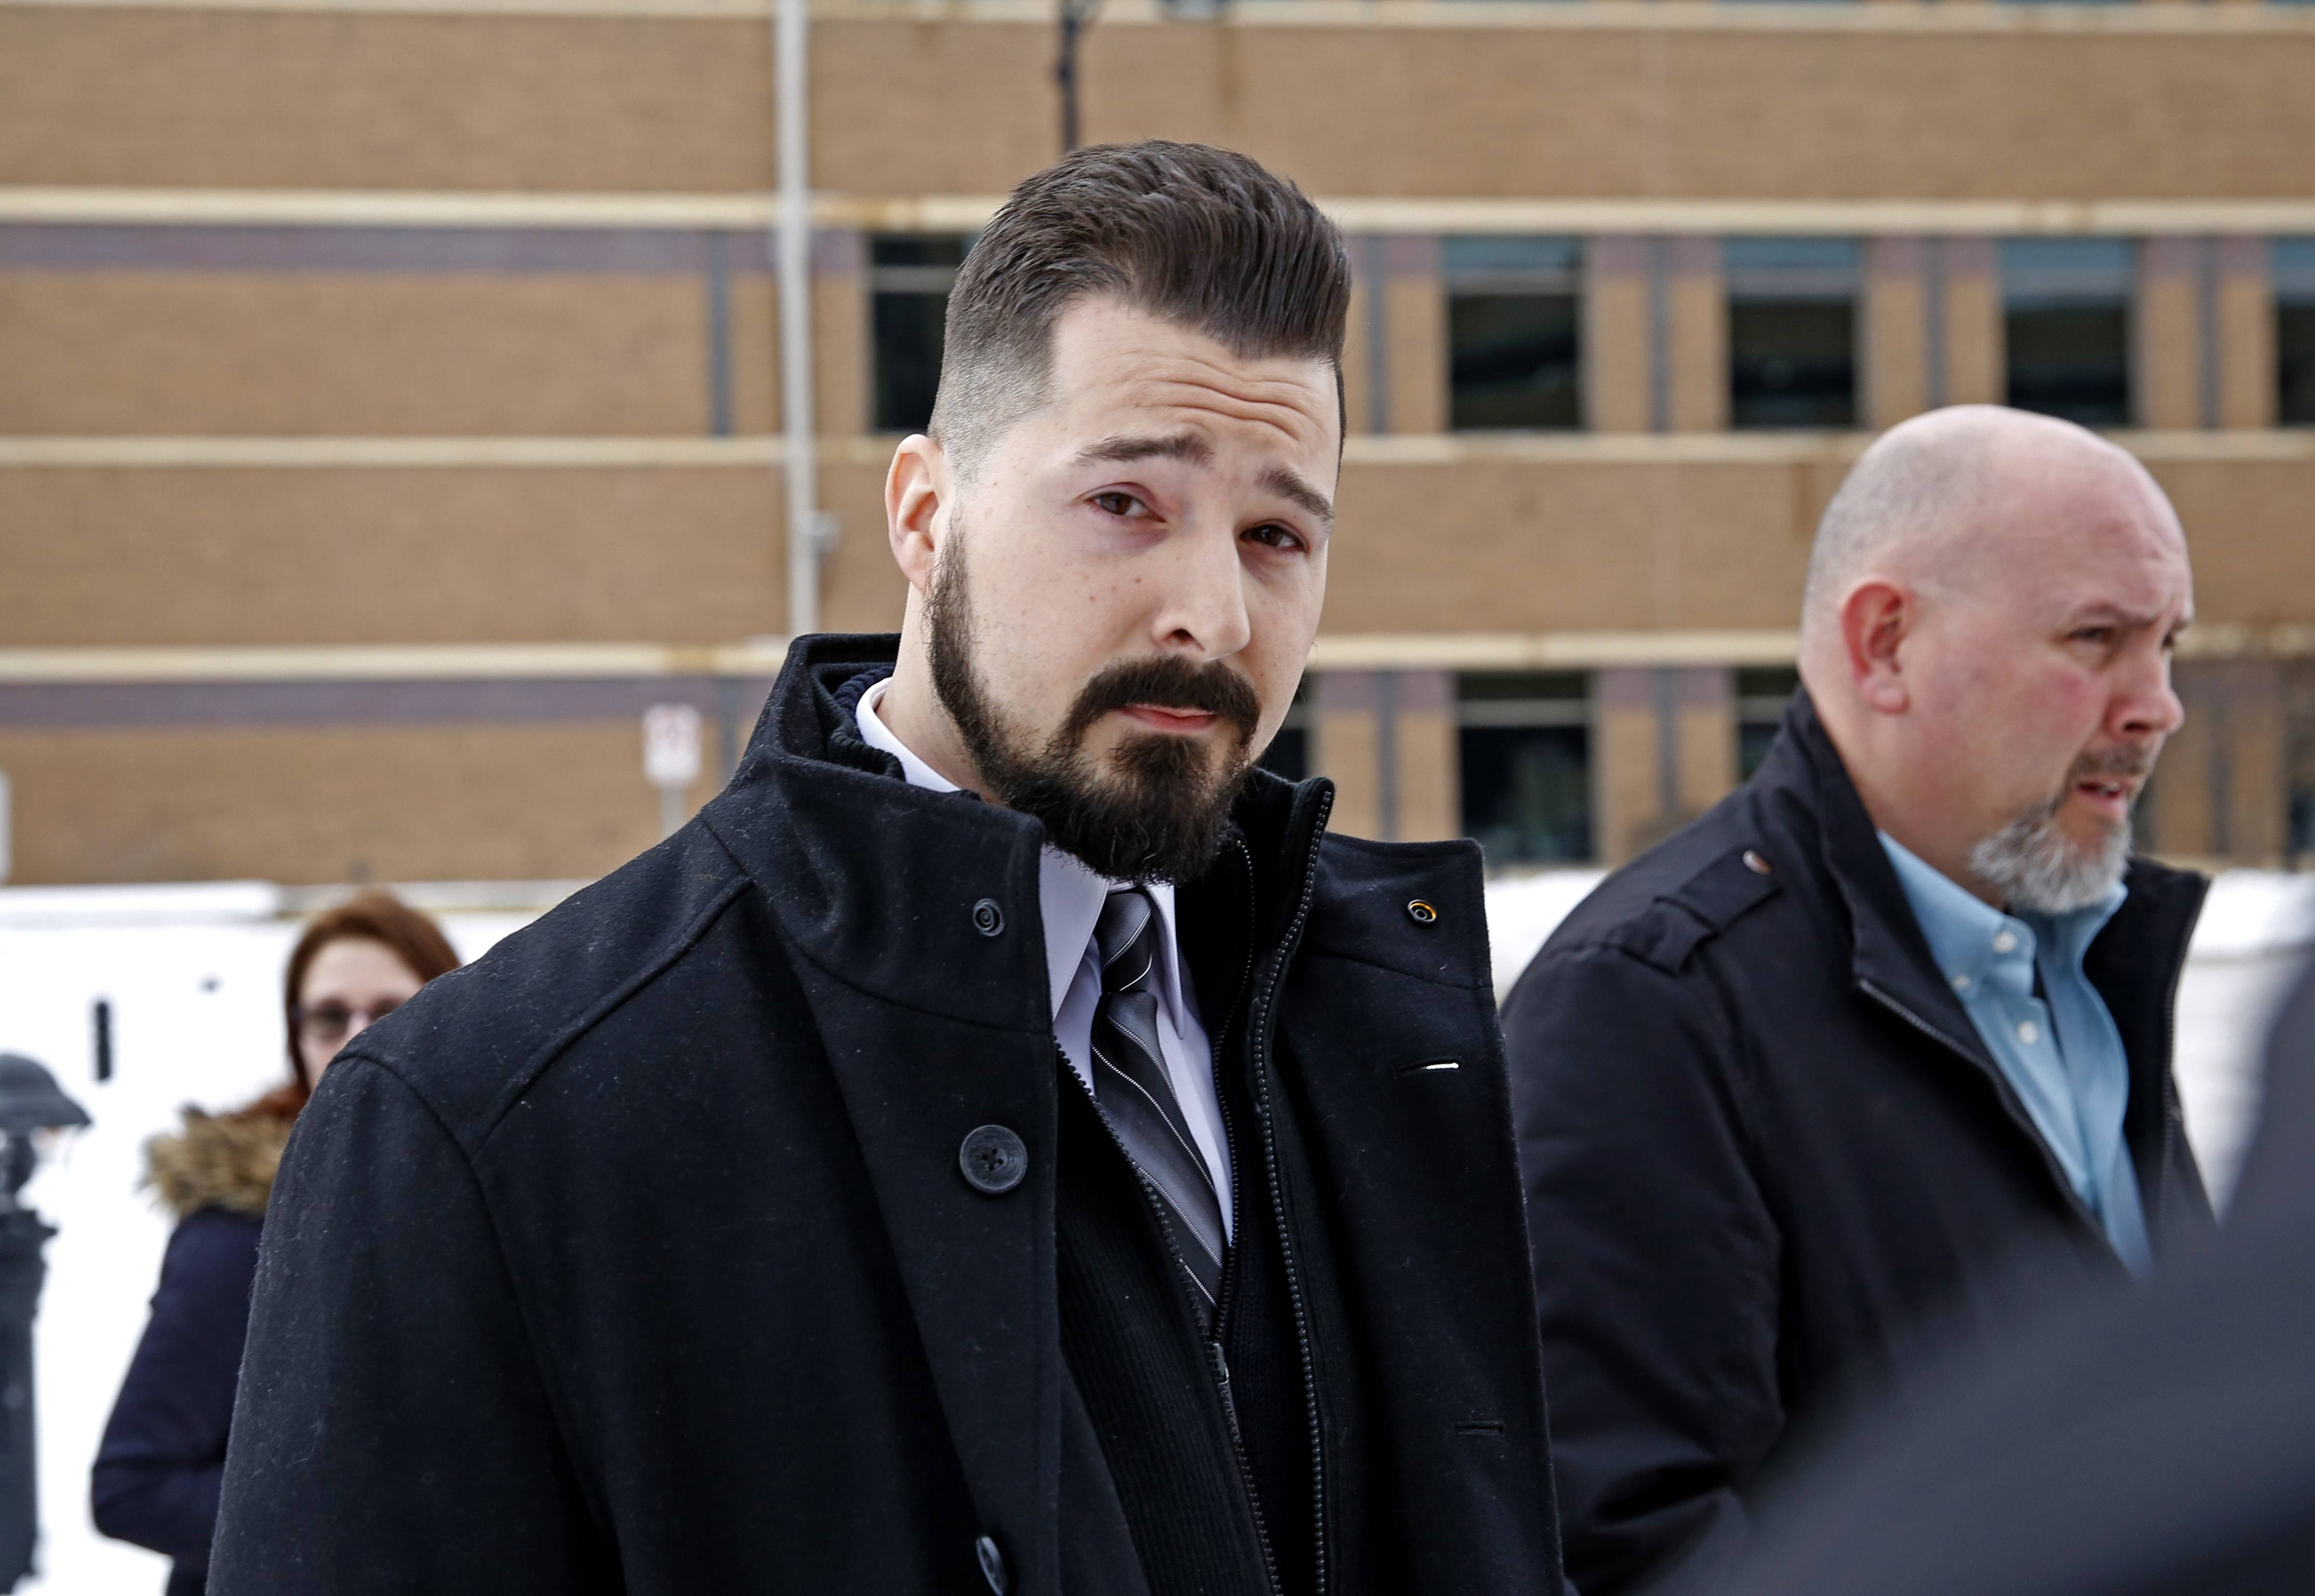 Why prosecutors dropped charges against ex-Schaumburg cop charged in drug ring